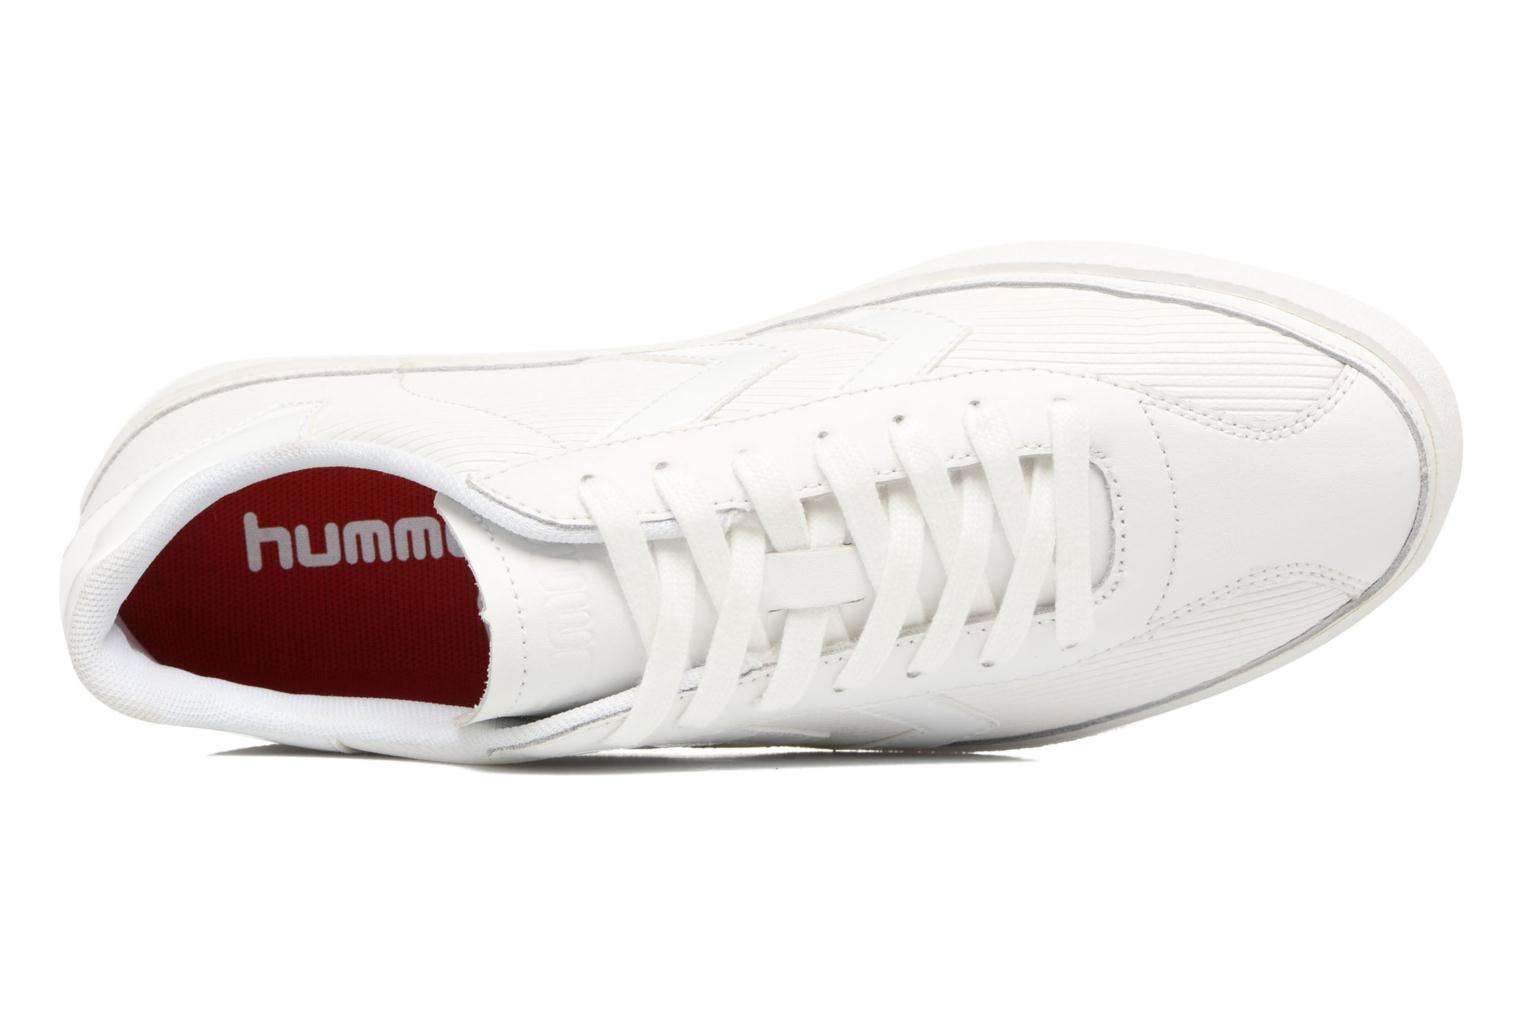 Stripes Hummel Diamant Hummel Diamant White White White Diamant Diamant White White Stripes Hummel White Stripes Hummel cWUpHxnI6f